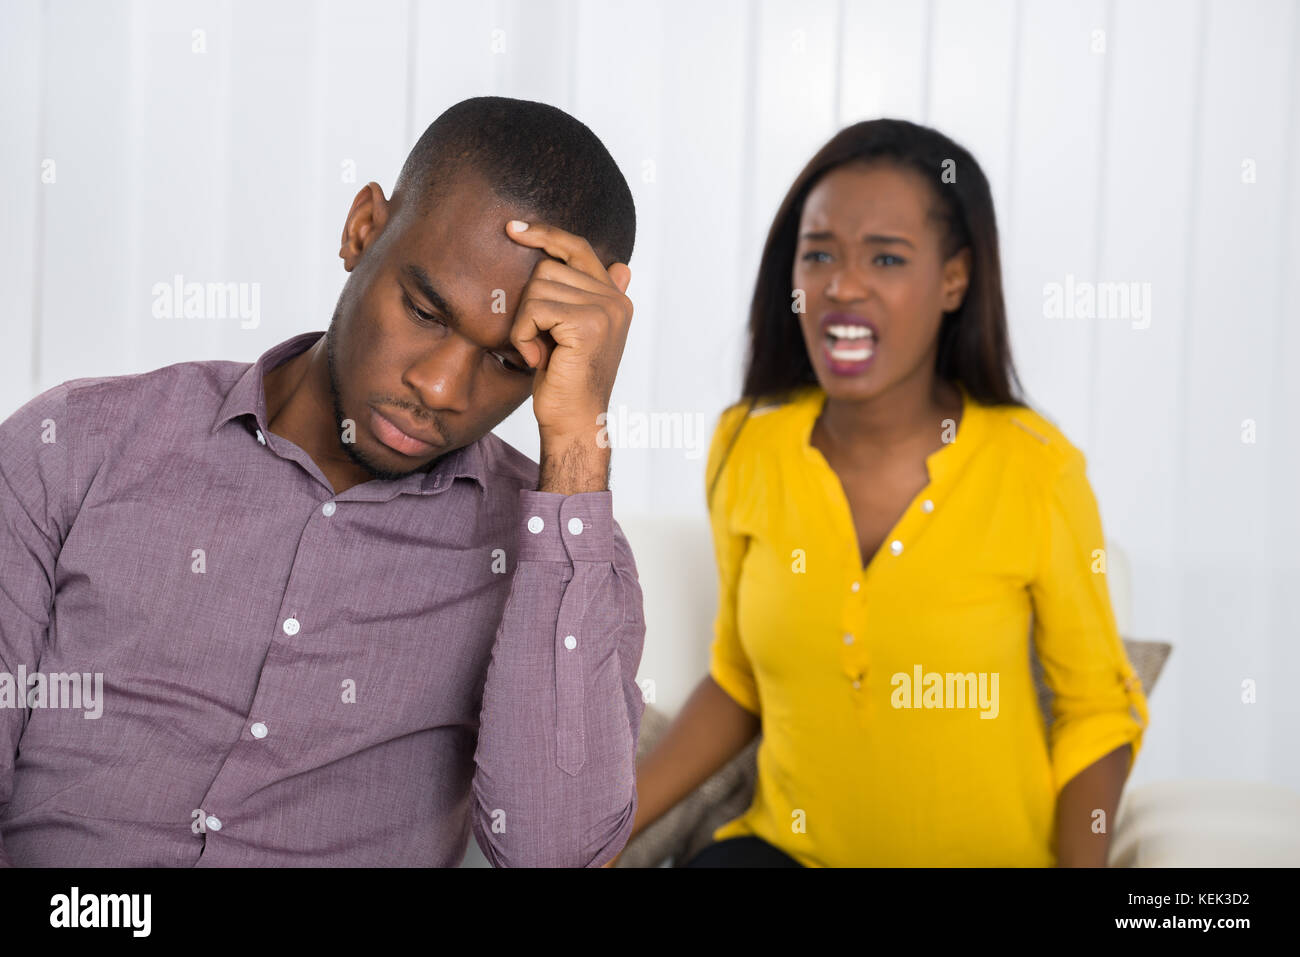 Unhappy Young Woman Having Argument With Man At Home - Stock Image